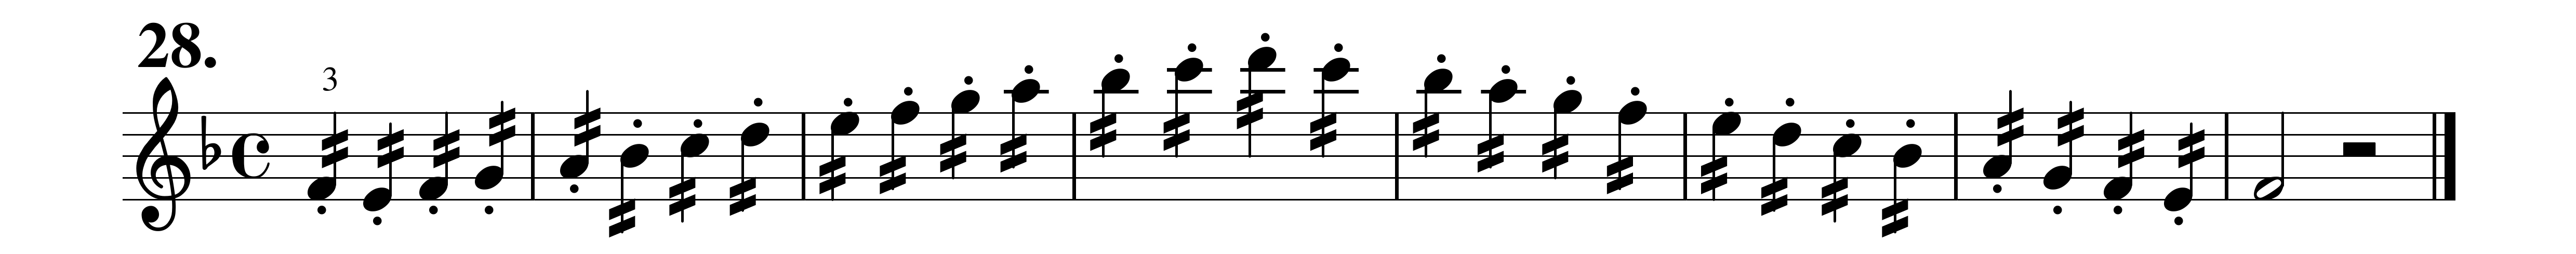 how to make notes staccato in musescore